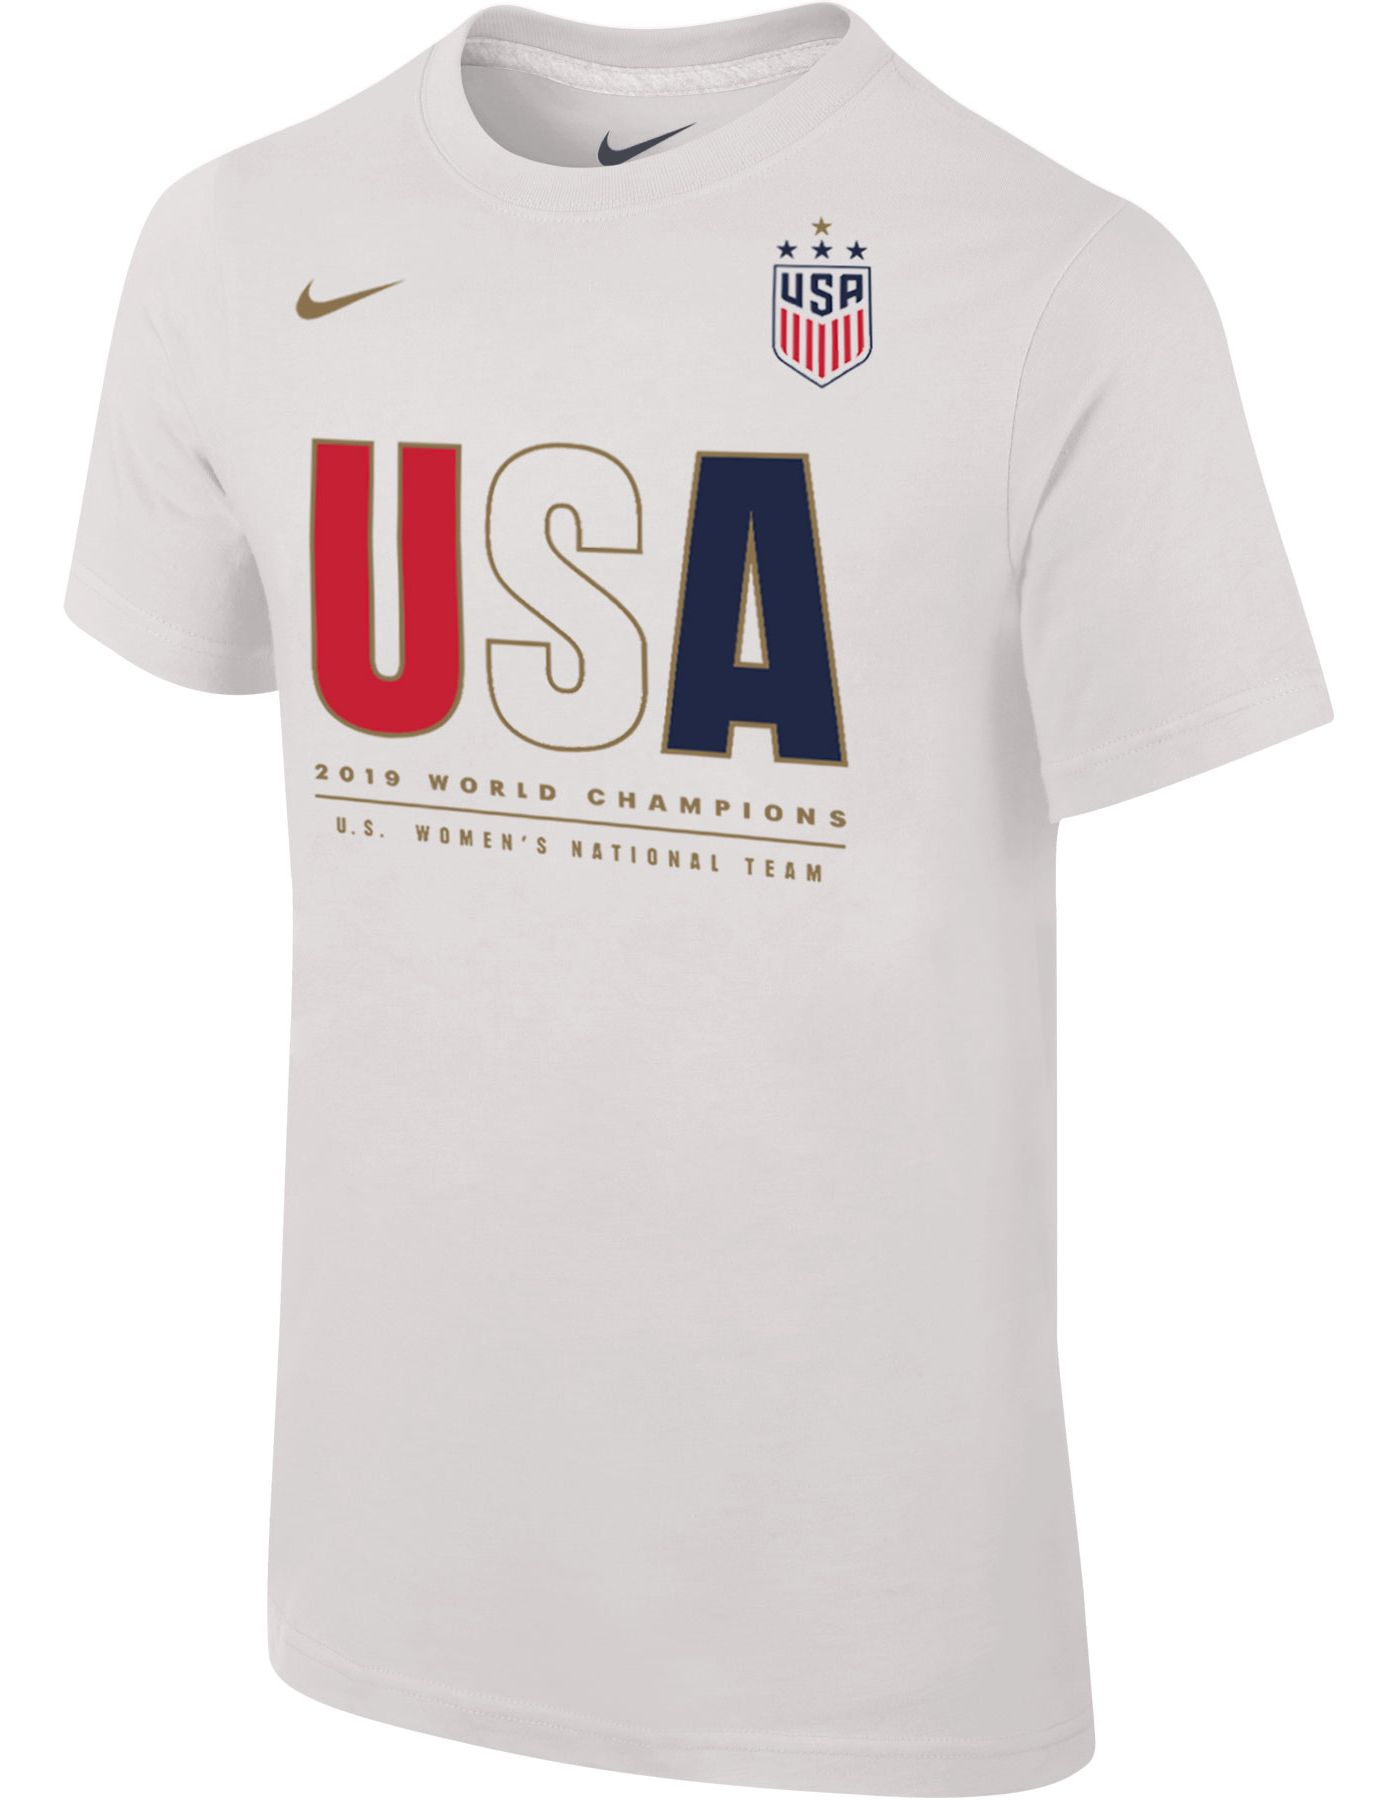 Nike Youth 2019 FIFA Women's World Cup Champions USA Soccer White T-Shirt